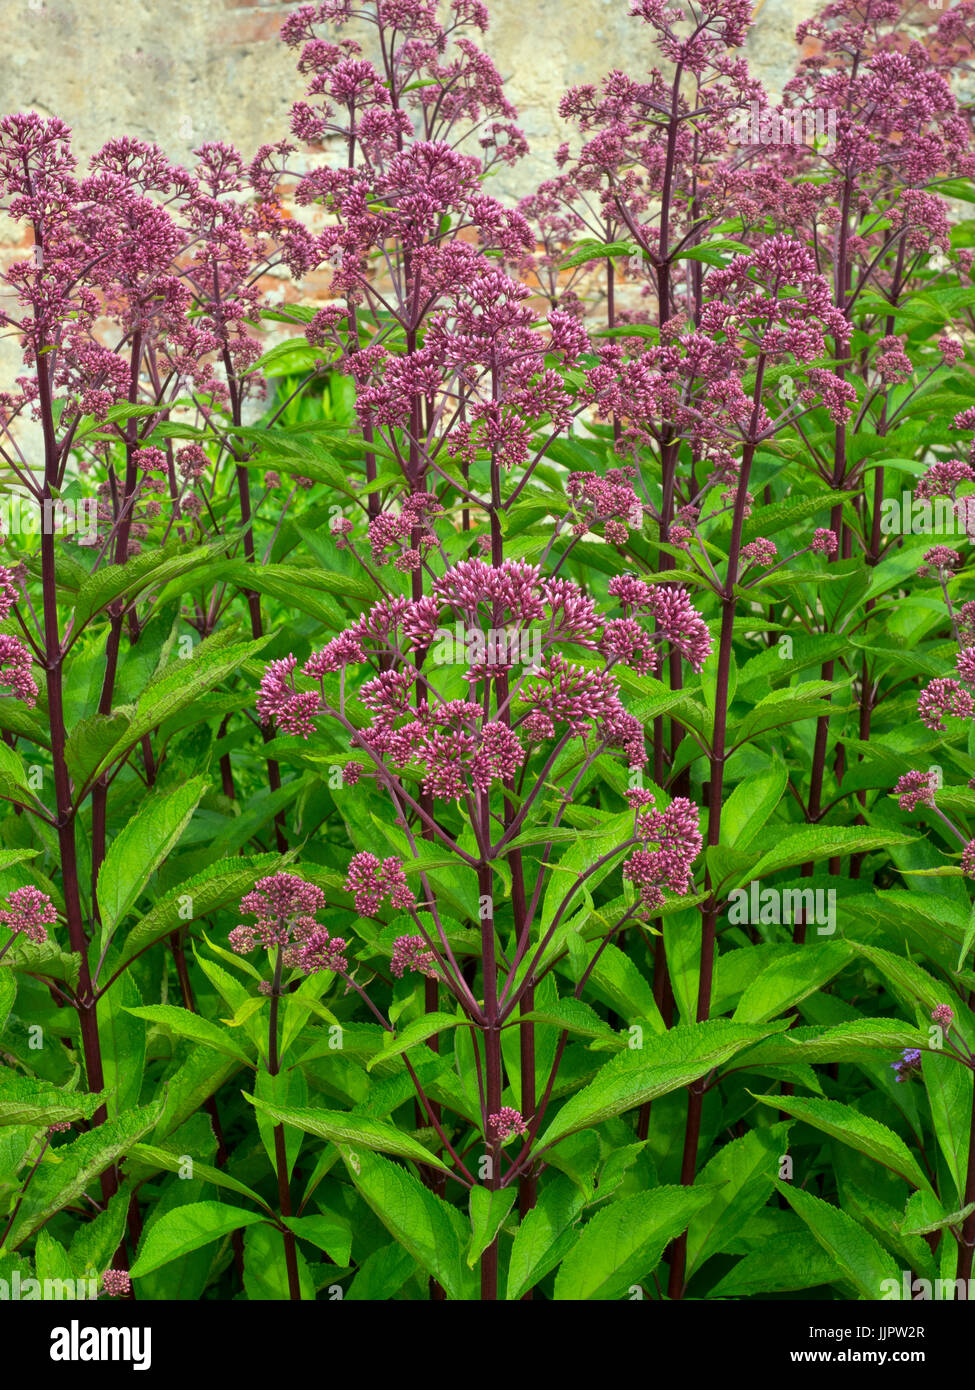 Eupatorium maculatum or Joe Pye weed 'Gateway' in garden border - Stock Image